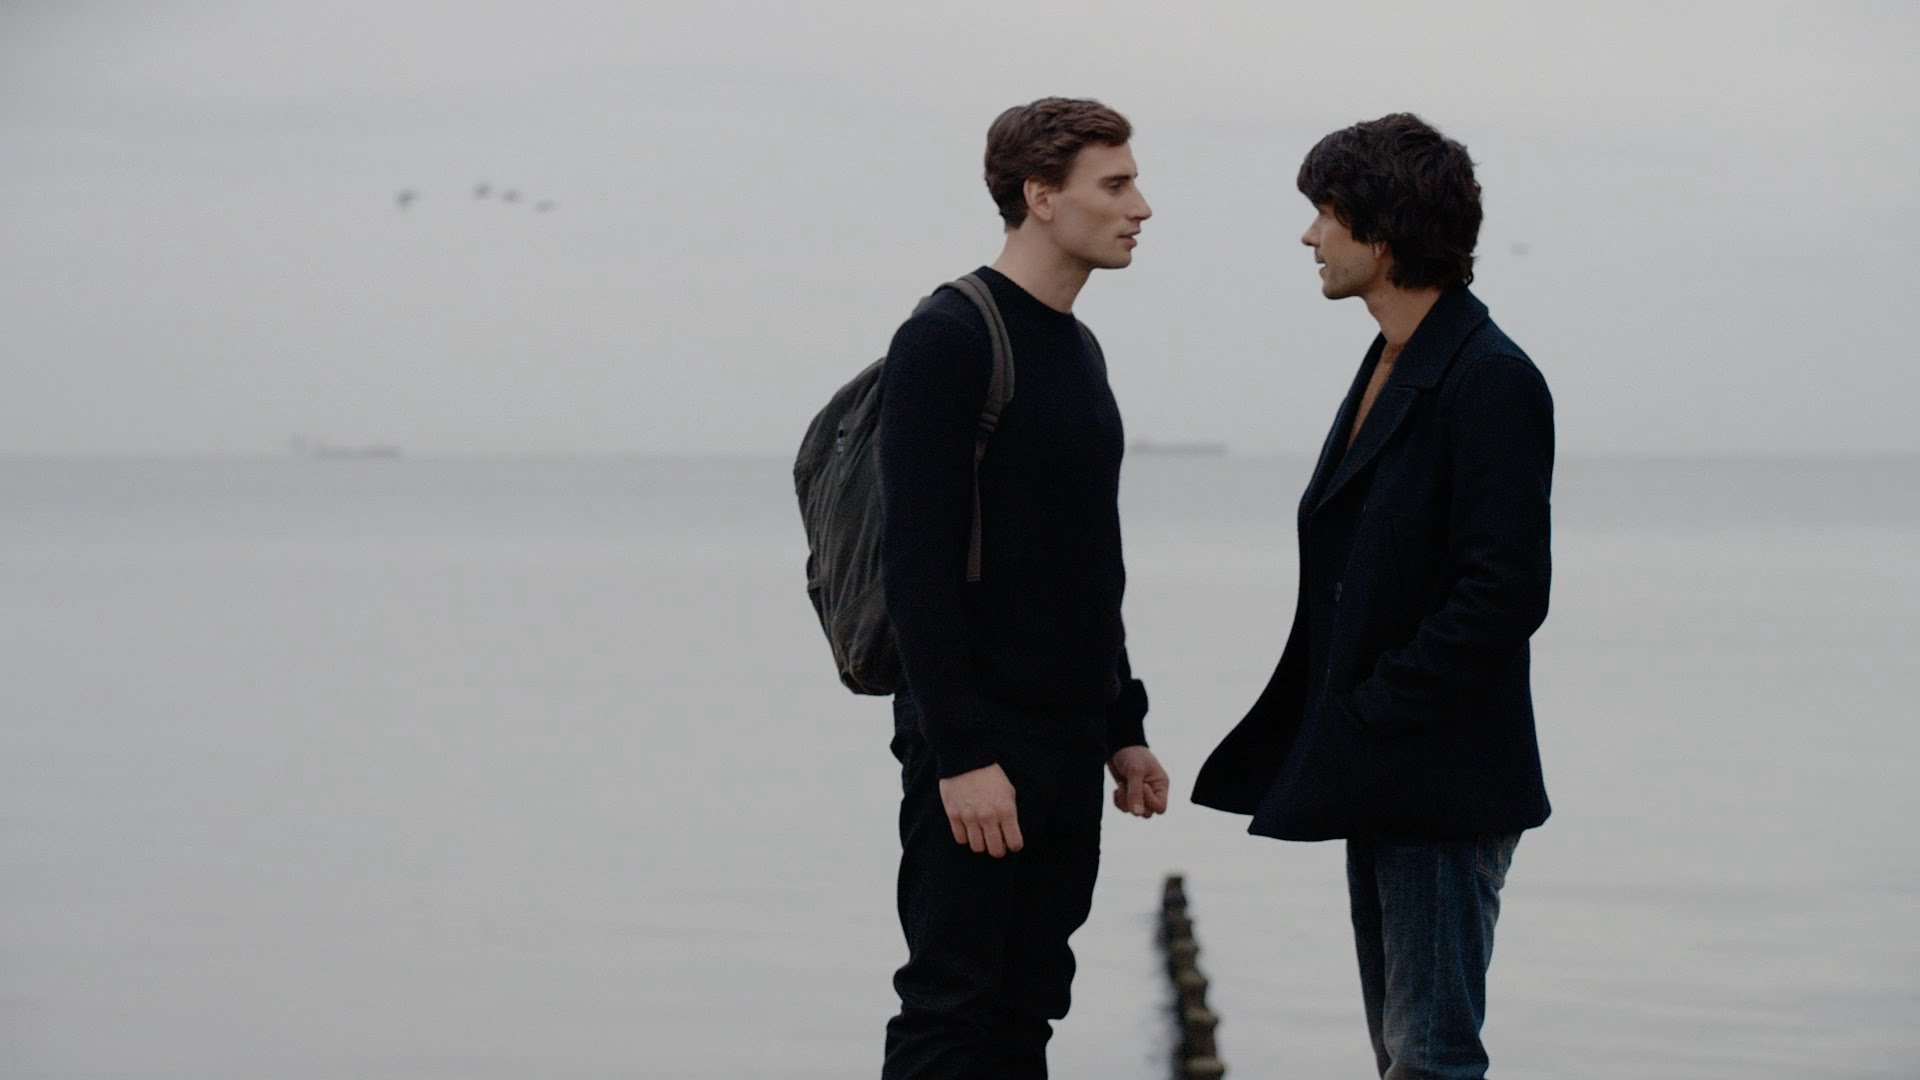 London Spy: gli attori Edward Holcroft e Ben Whishaw in un'immagine tratta dalla serie britannica